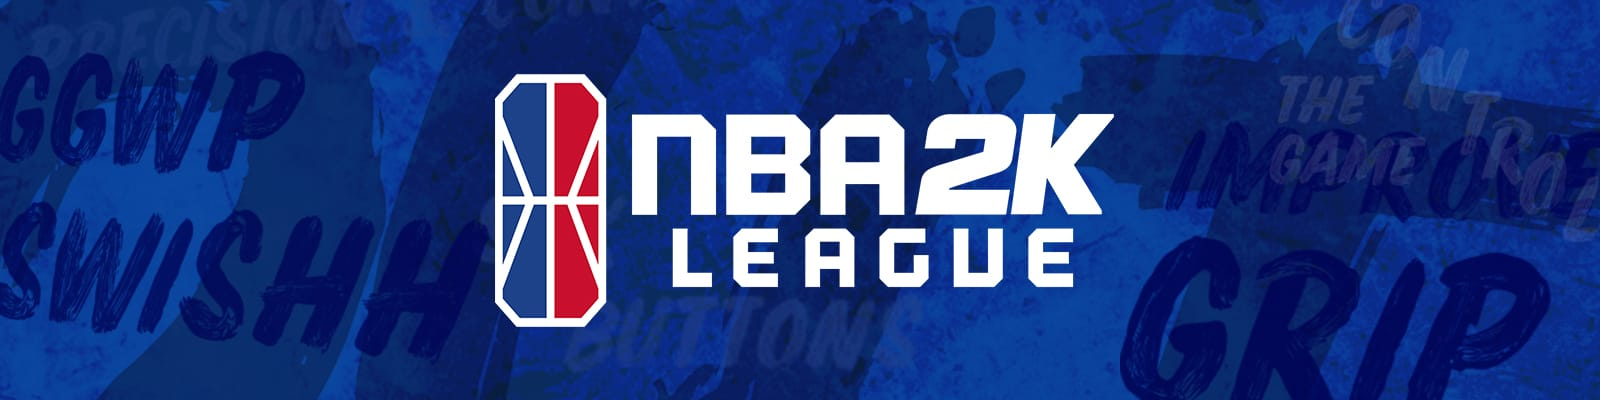 NBA2K League | Scuf Gaming